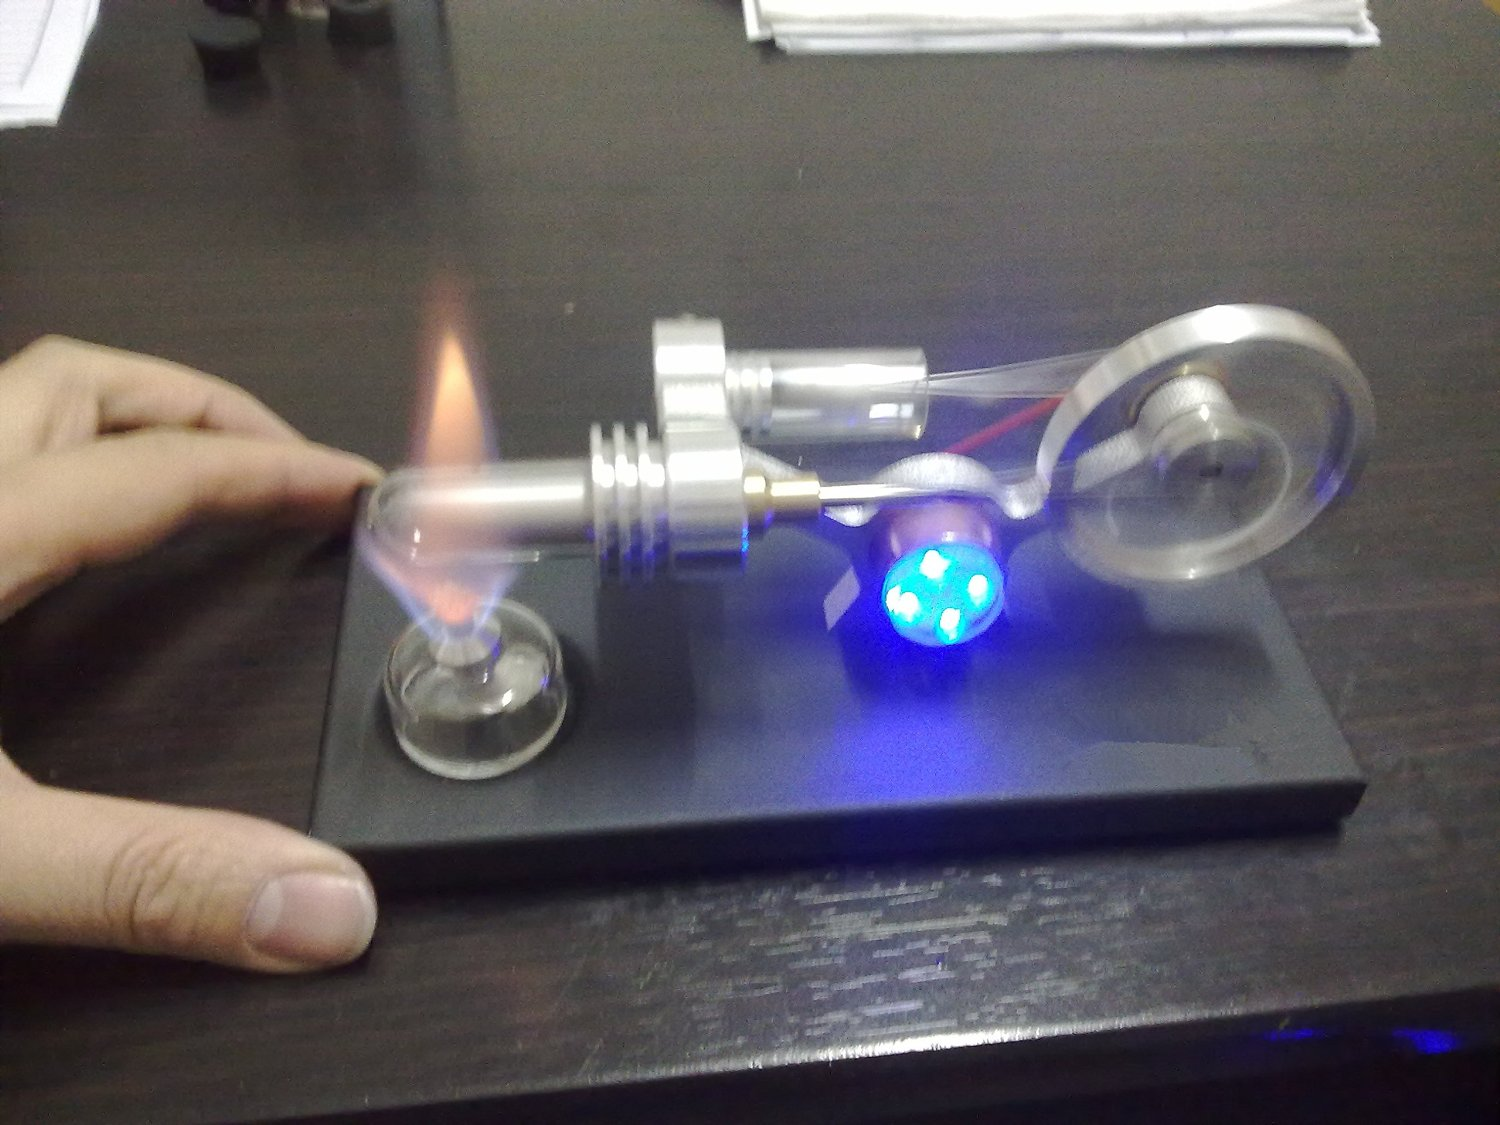 Hot Air Stirling Engine Education Toy Electricity Power Generator Blue LED Fd05M детское лего no education toy